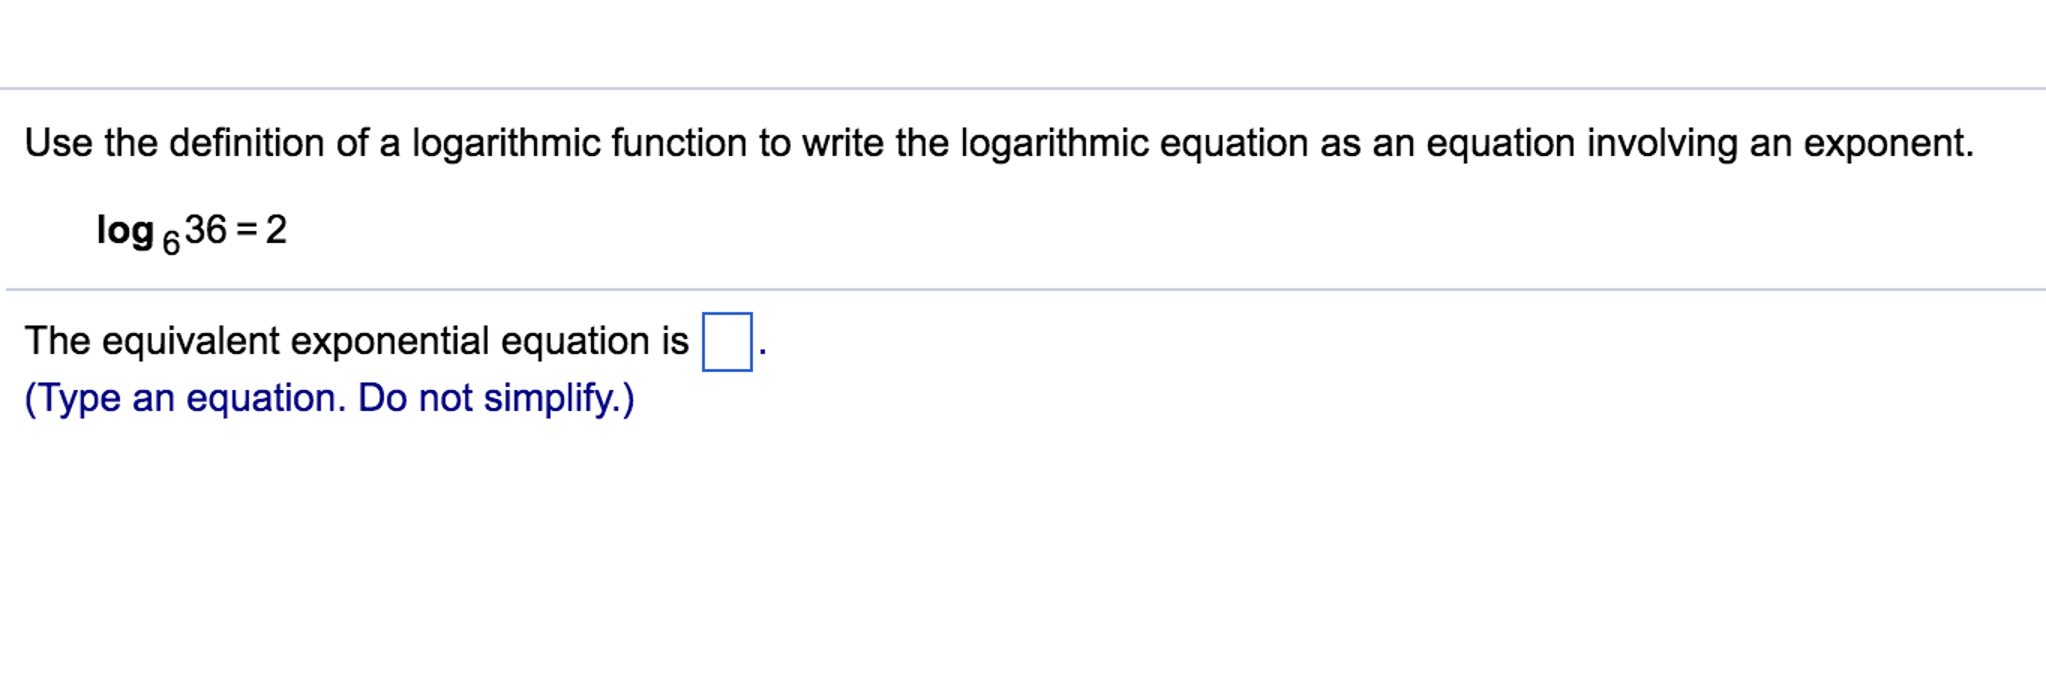 solved: use the definition of a logarithmic function to wr